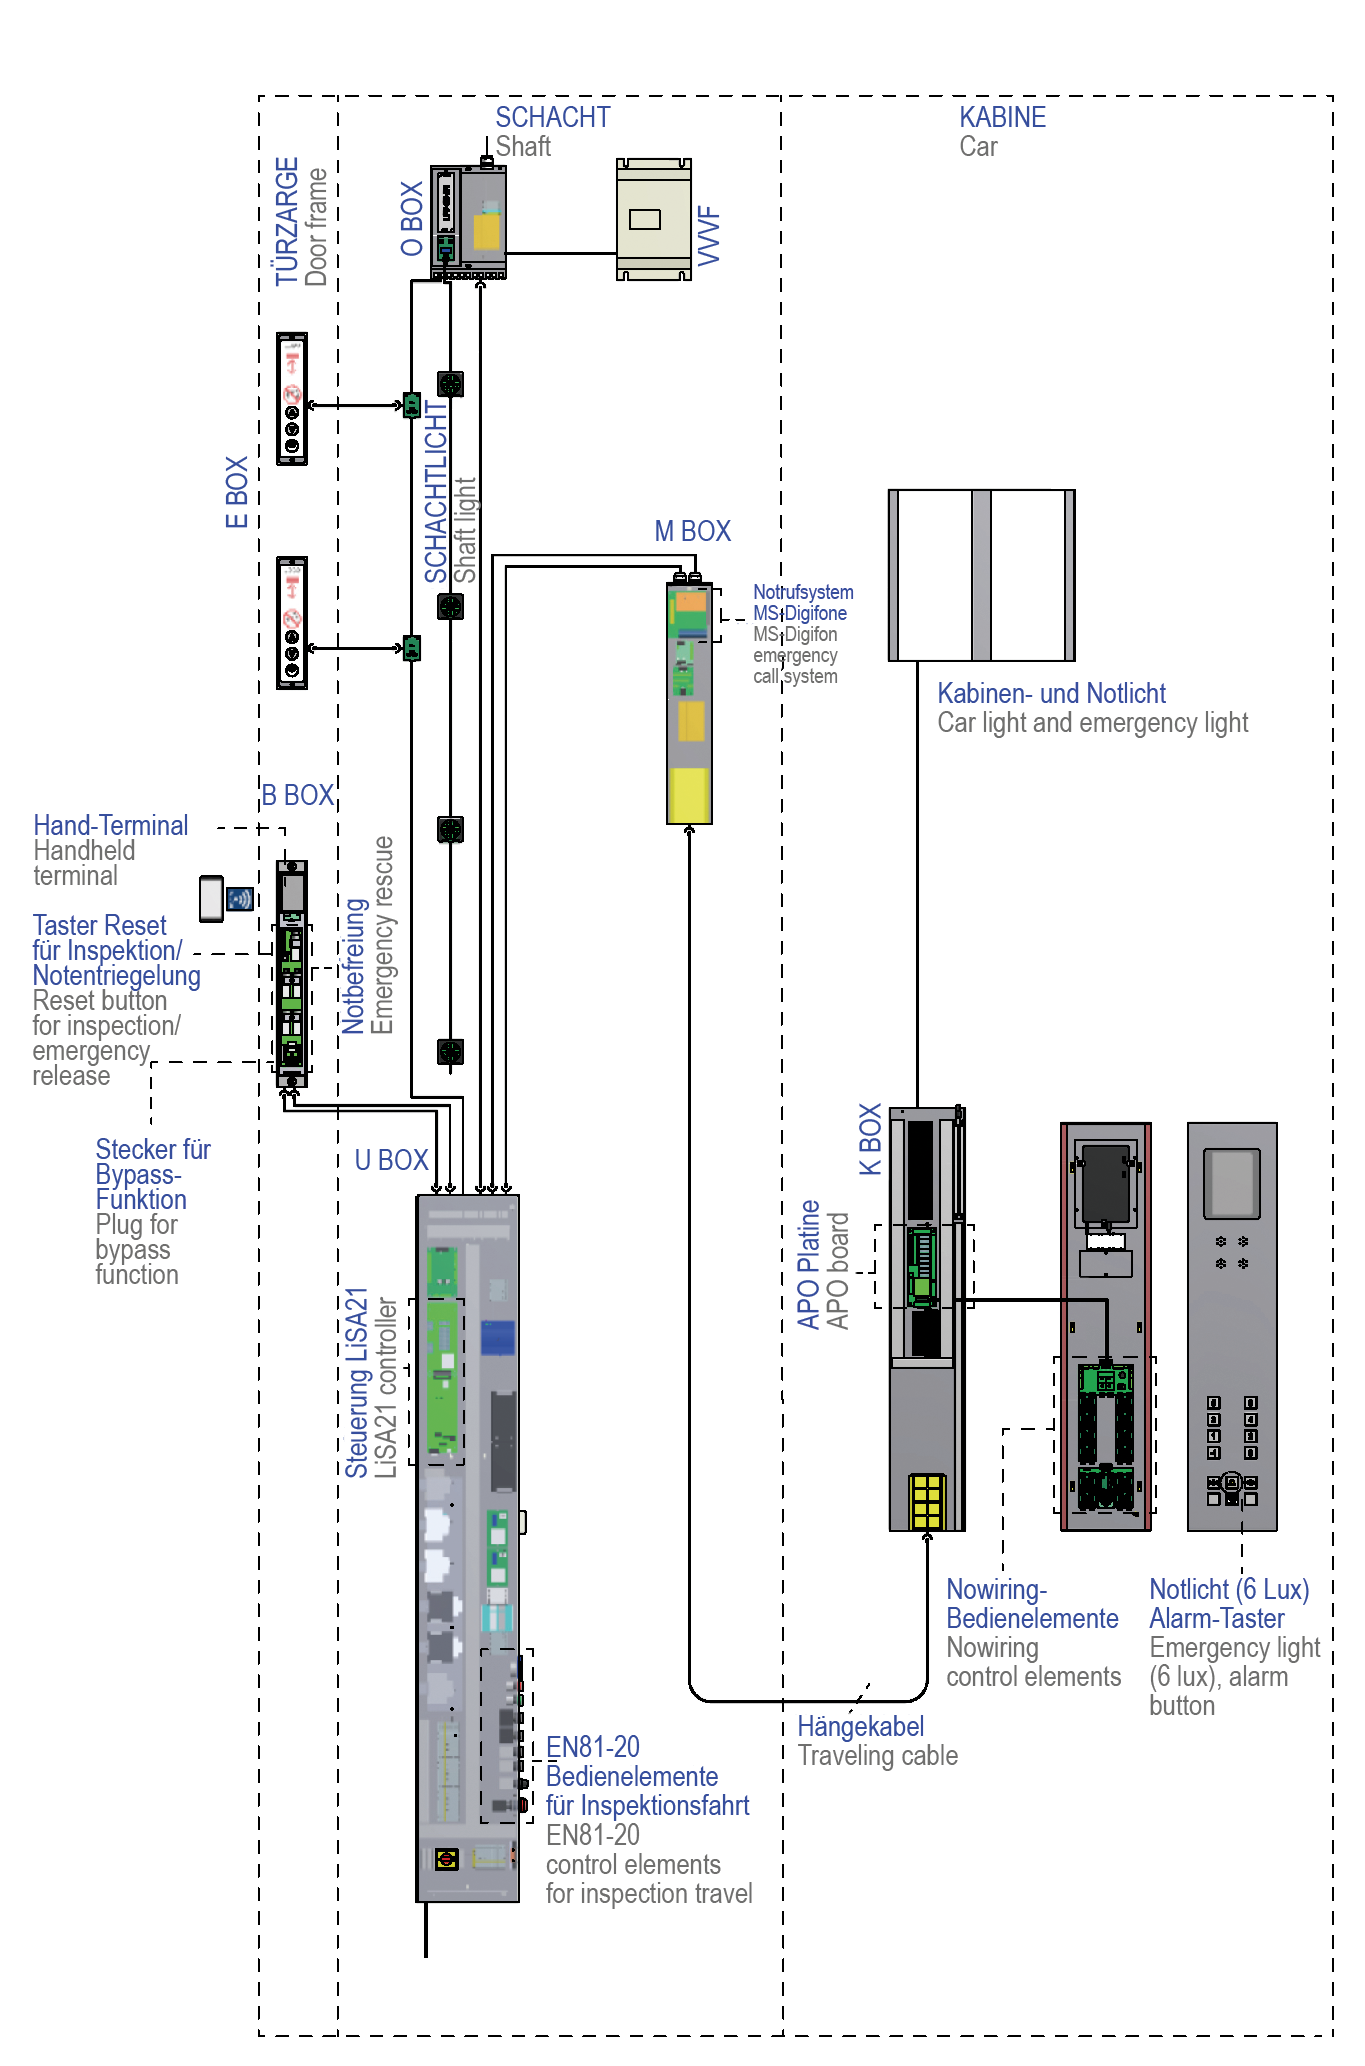 Lift Controllers Schneider Steuerungstechnik Gmbh Elevator Wiring Schematic For Elevators Control Electronics In Ubox Us The Shaft Controller